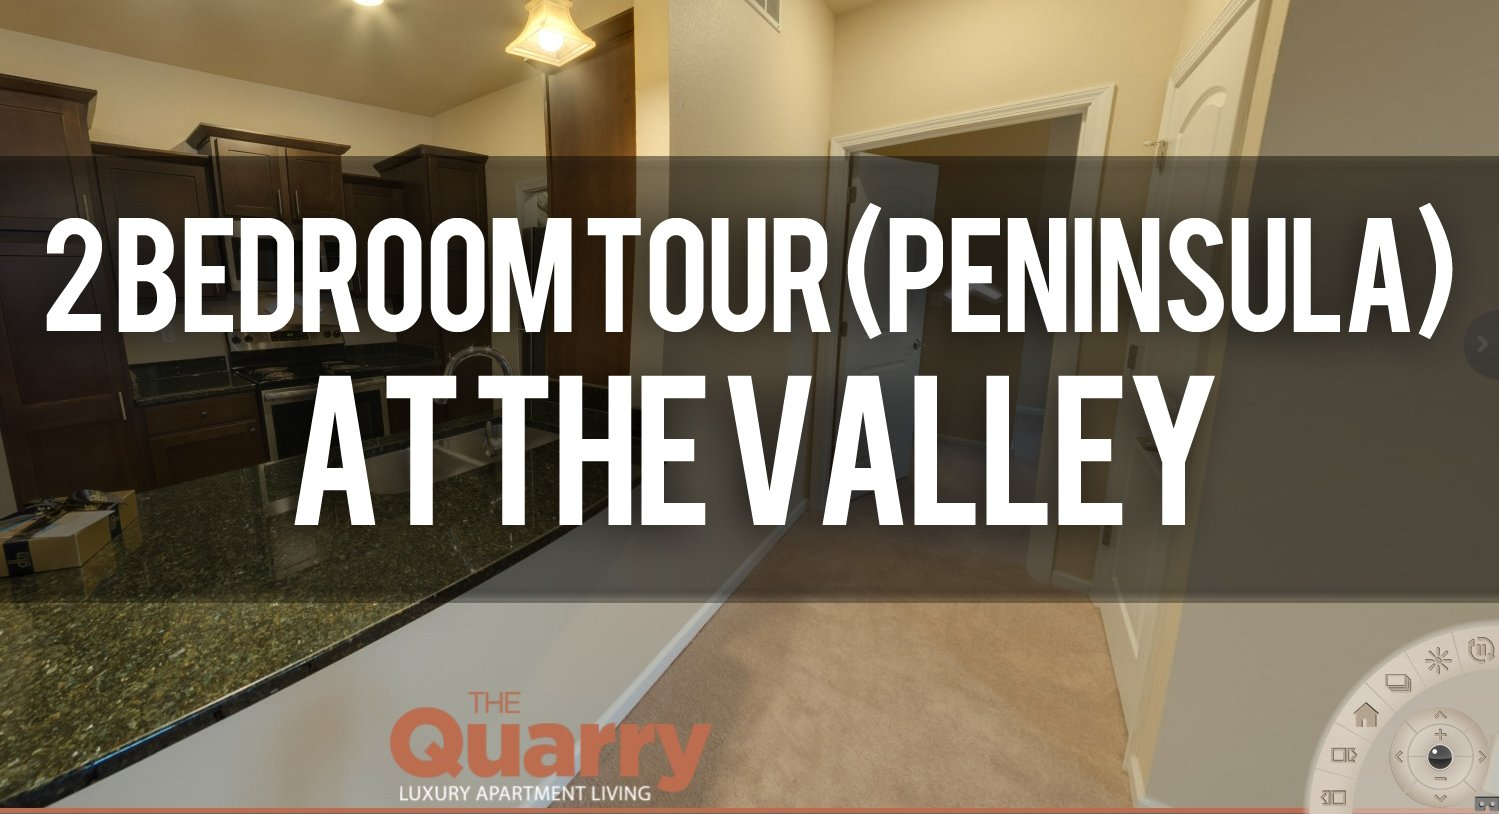 Virtual Tour of The Quarry Apartments Valley 2 Bedroom Peninsula Kitchen